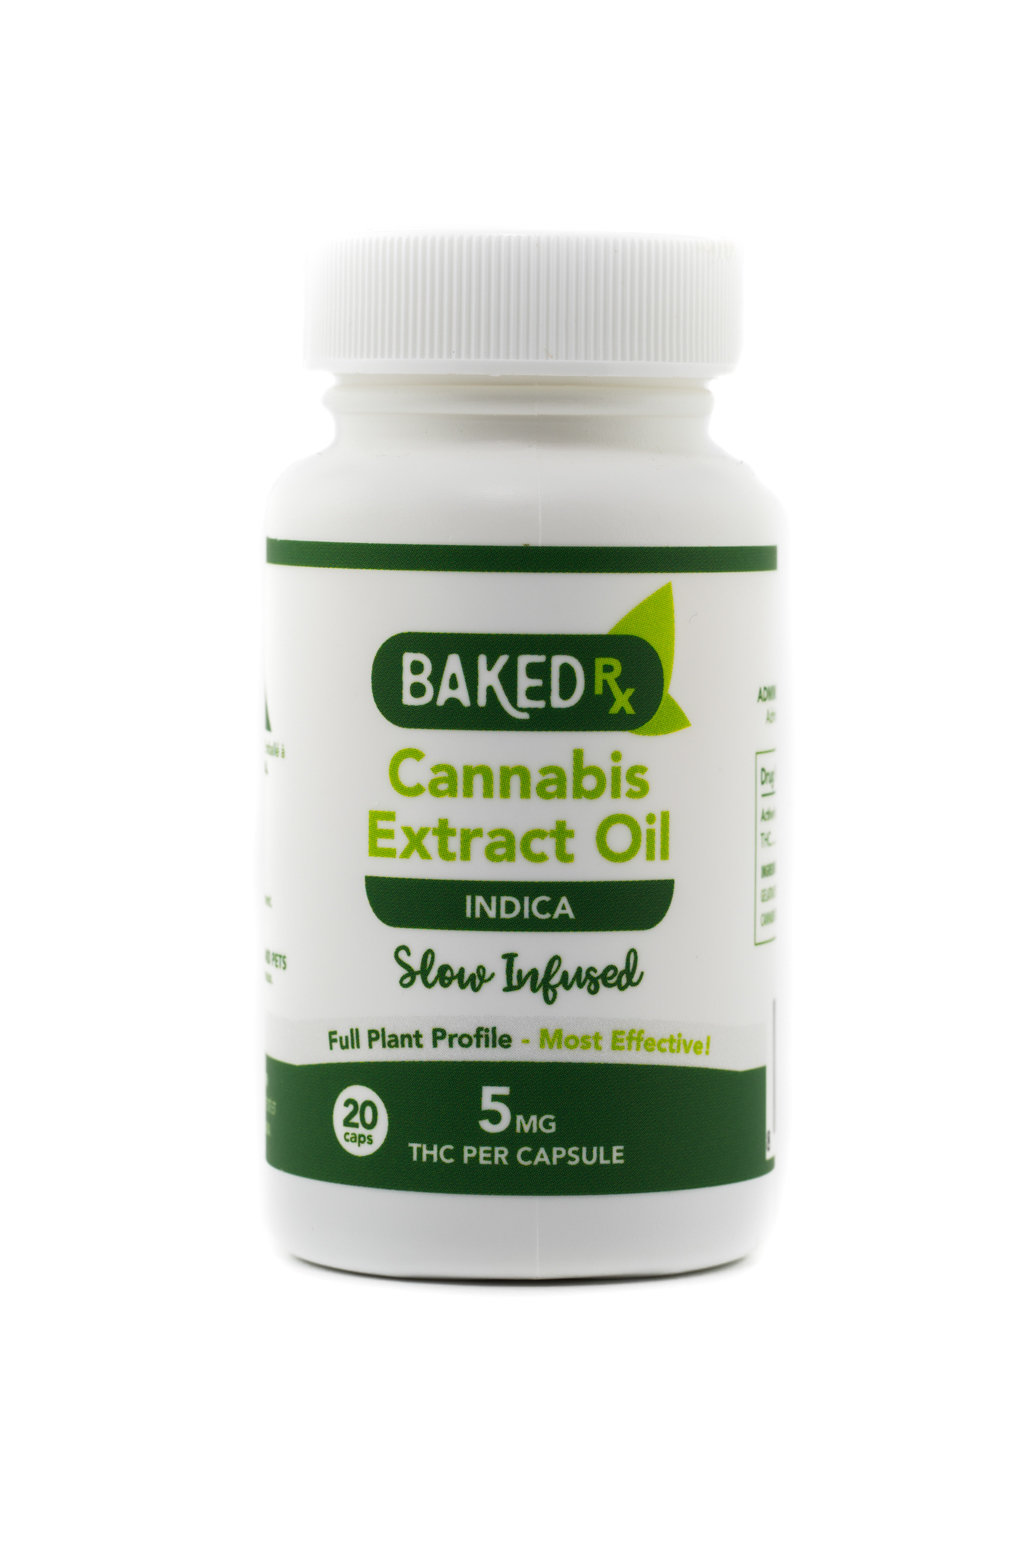 5mg Slow Infused Indica Cannoil Capsules (20 pack) by Baked Edibles 00042